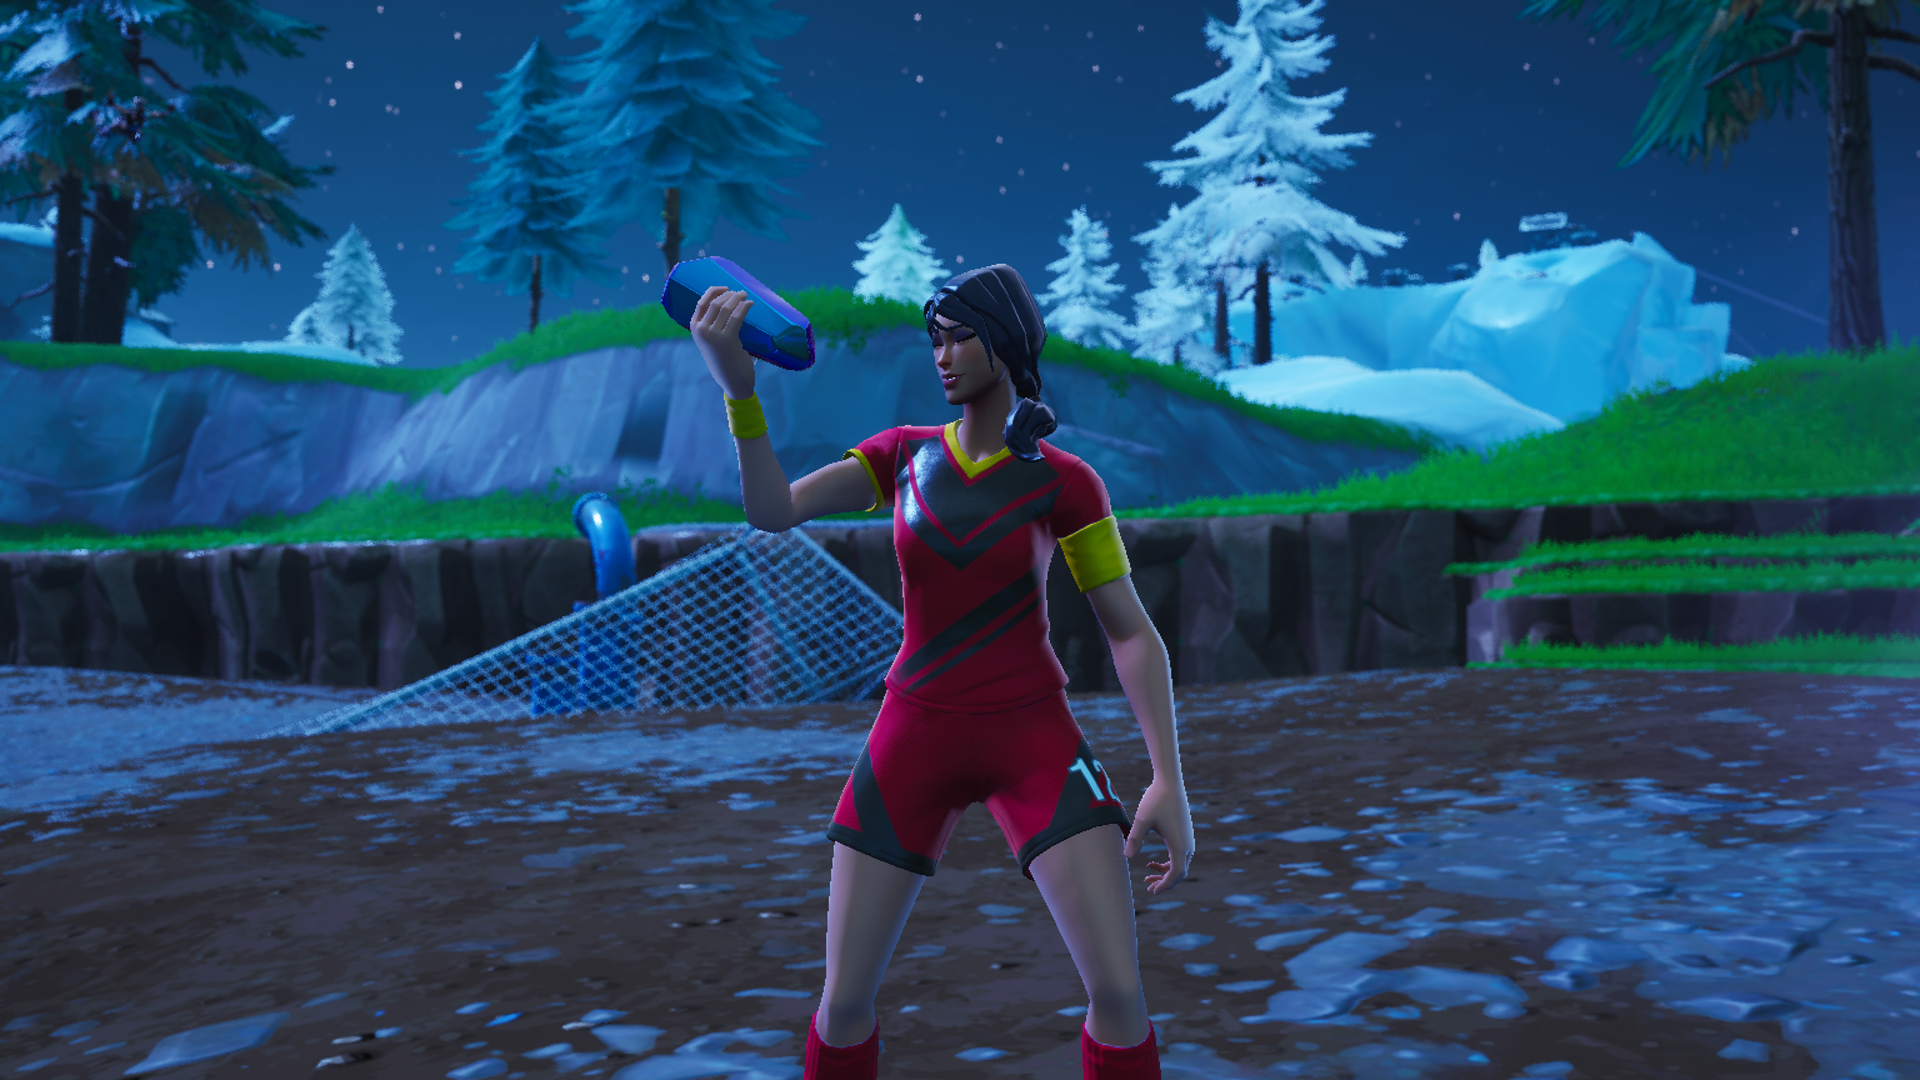 A Fortnite Soccer Skin stands in a crater about to activate a Hop Rock